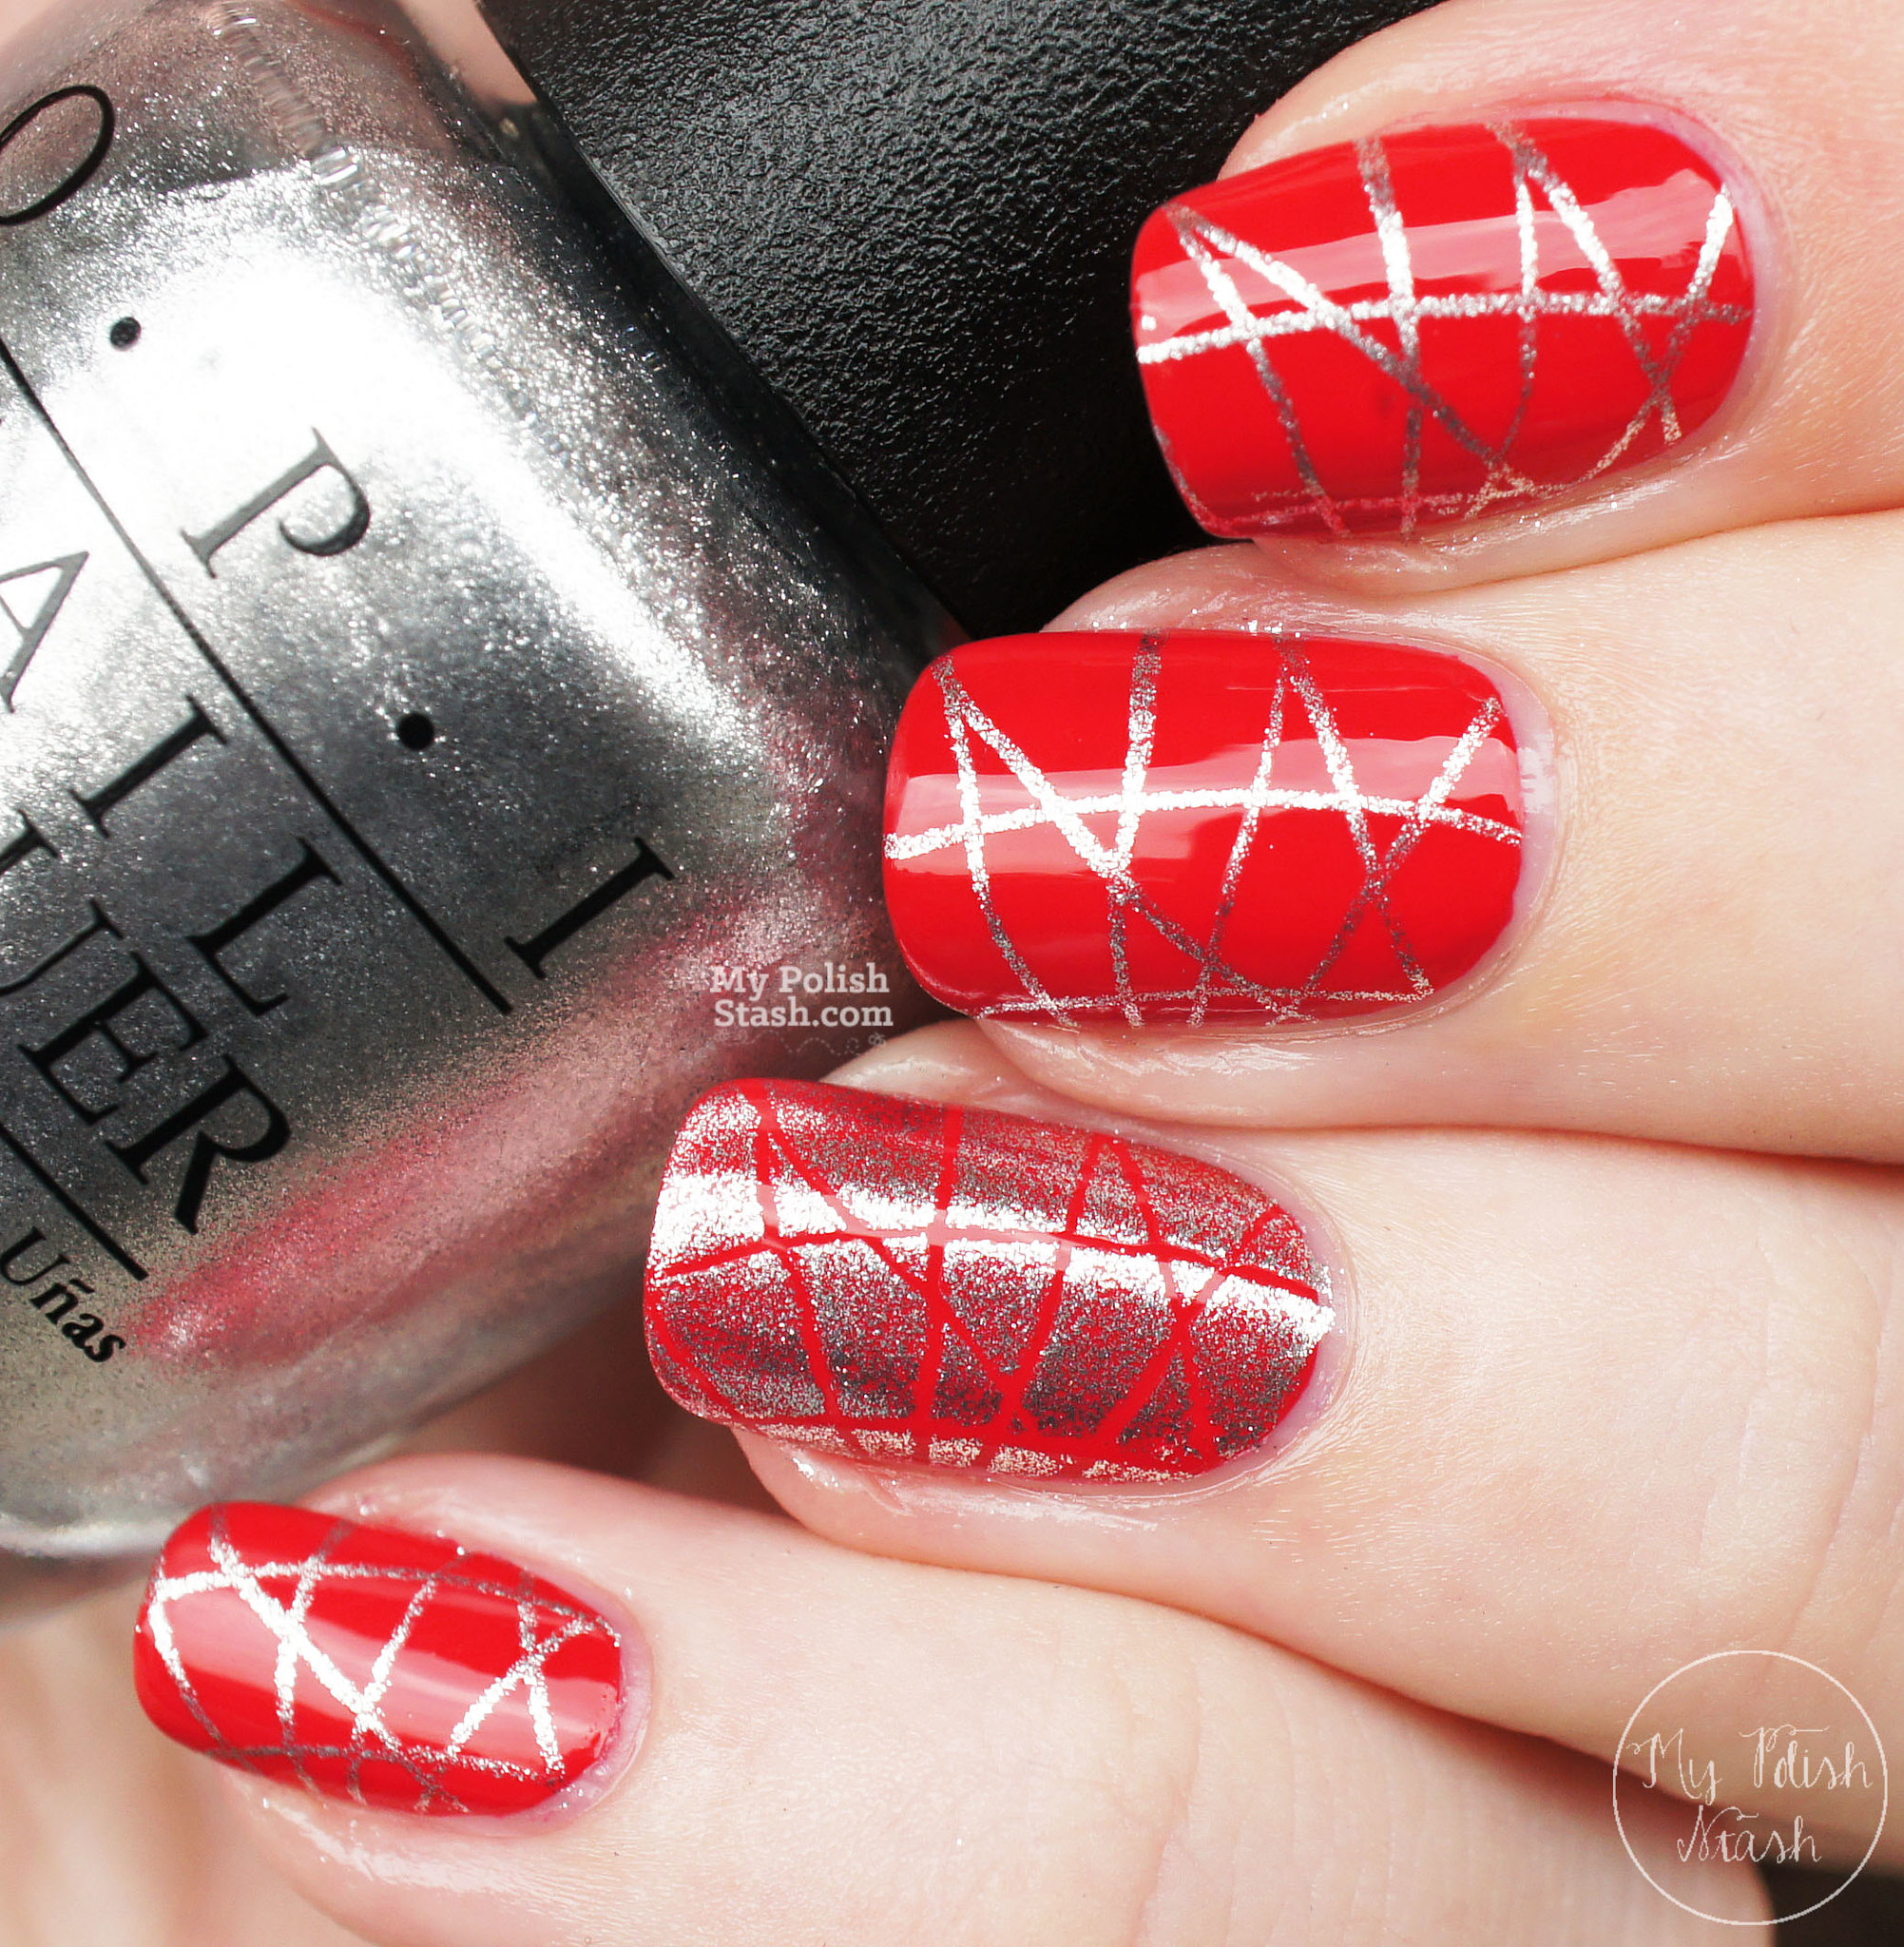 OPI-Coca-cola-red-turn-on-the-haute-light-stamping-2